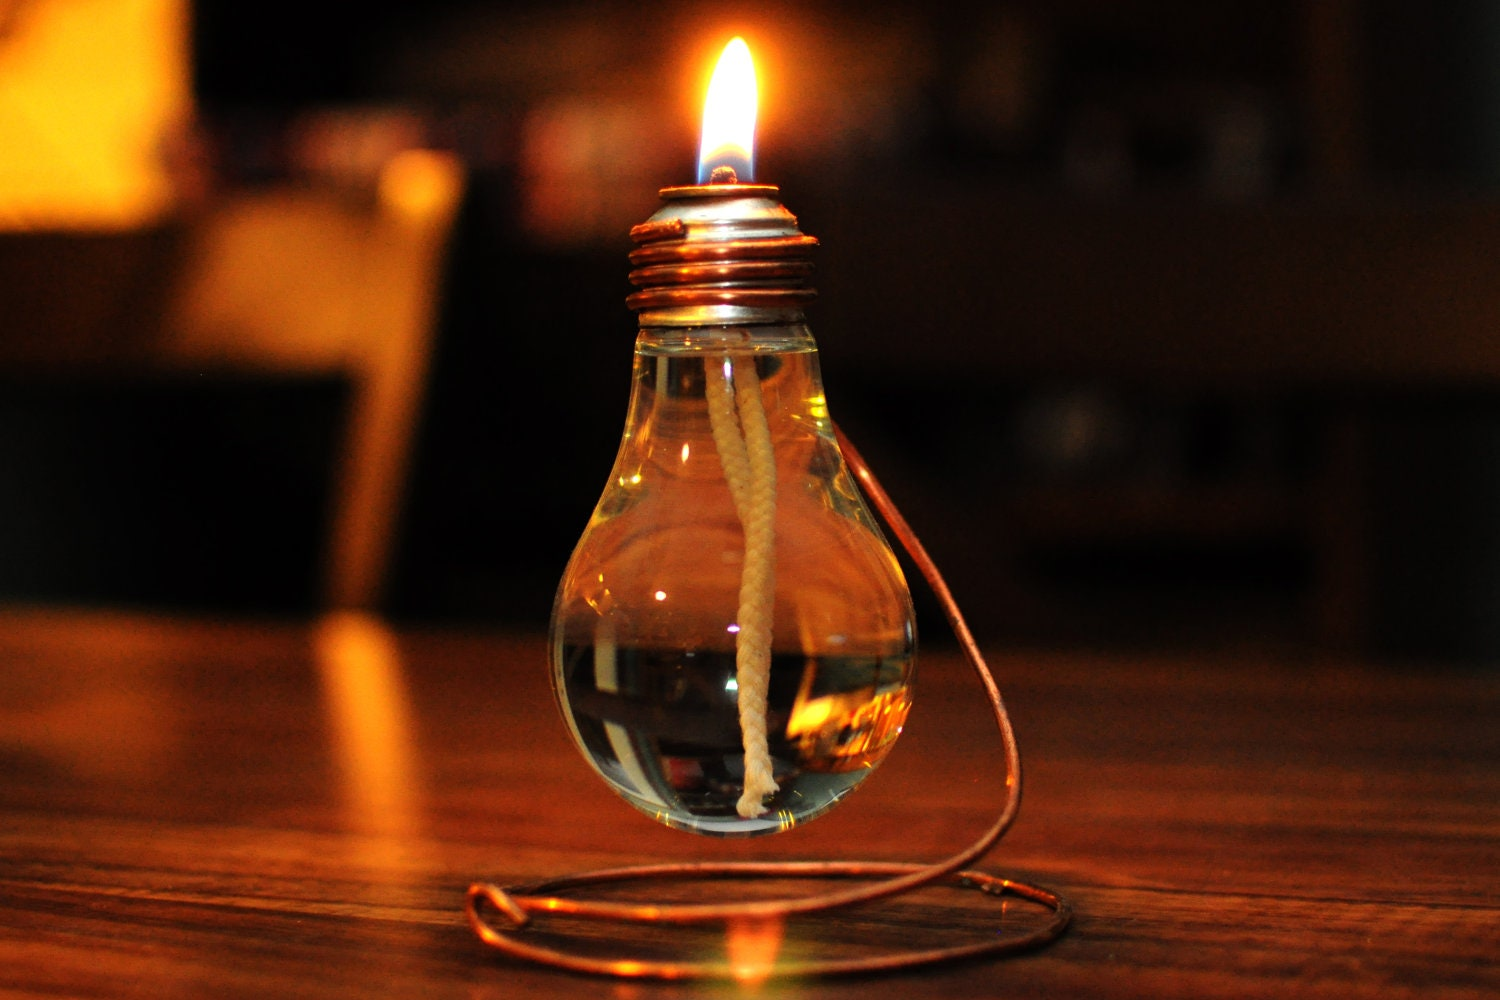 Light bulb oil lamp A light bulb